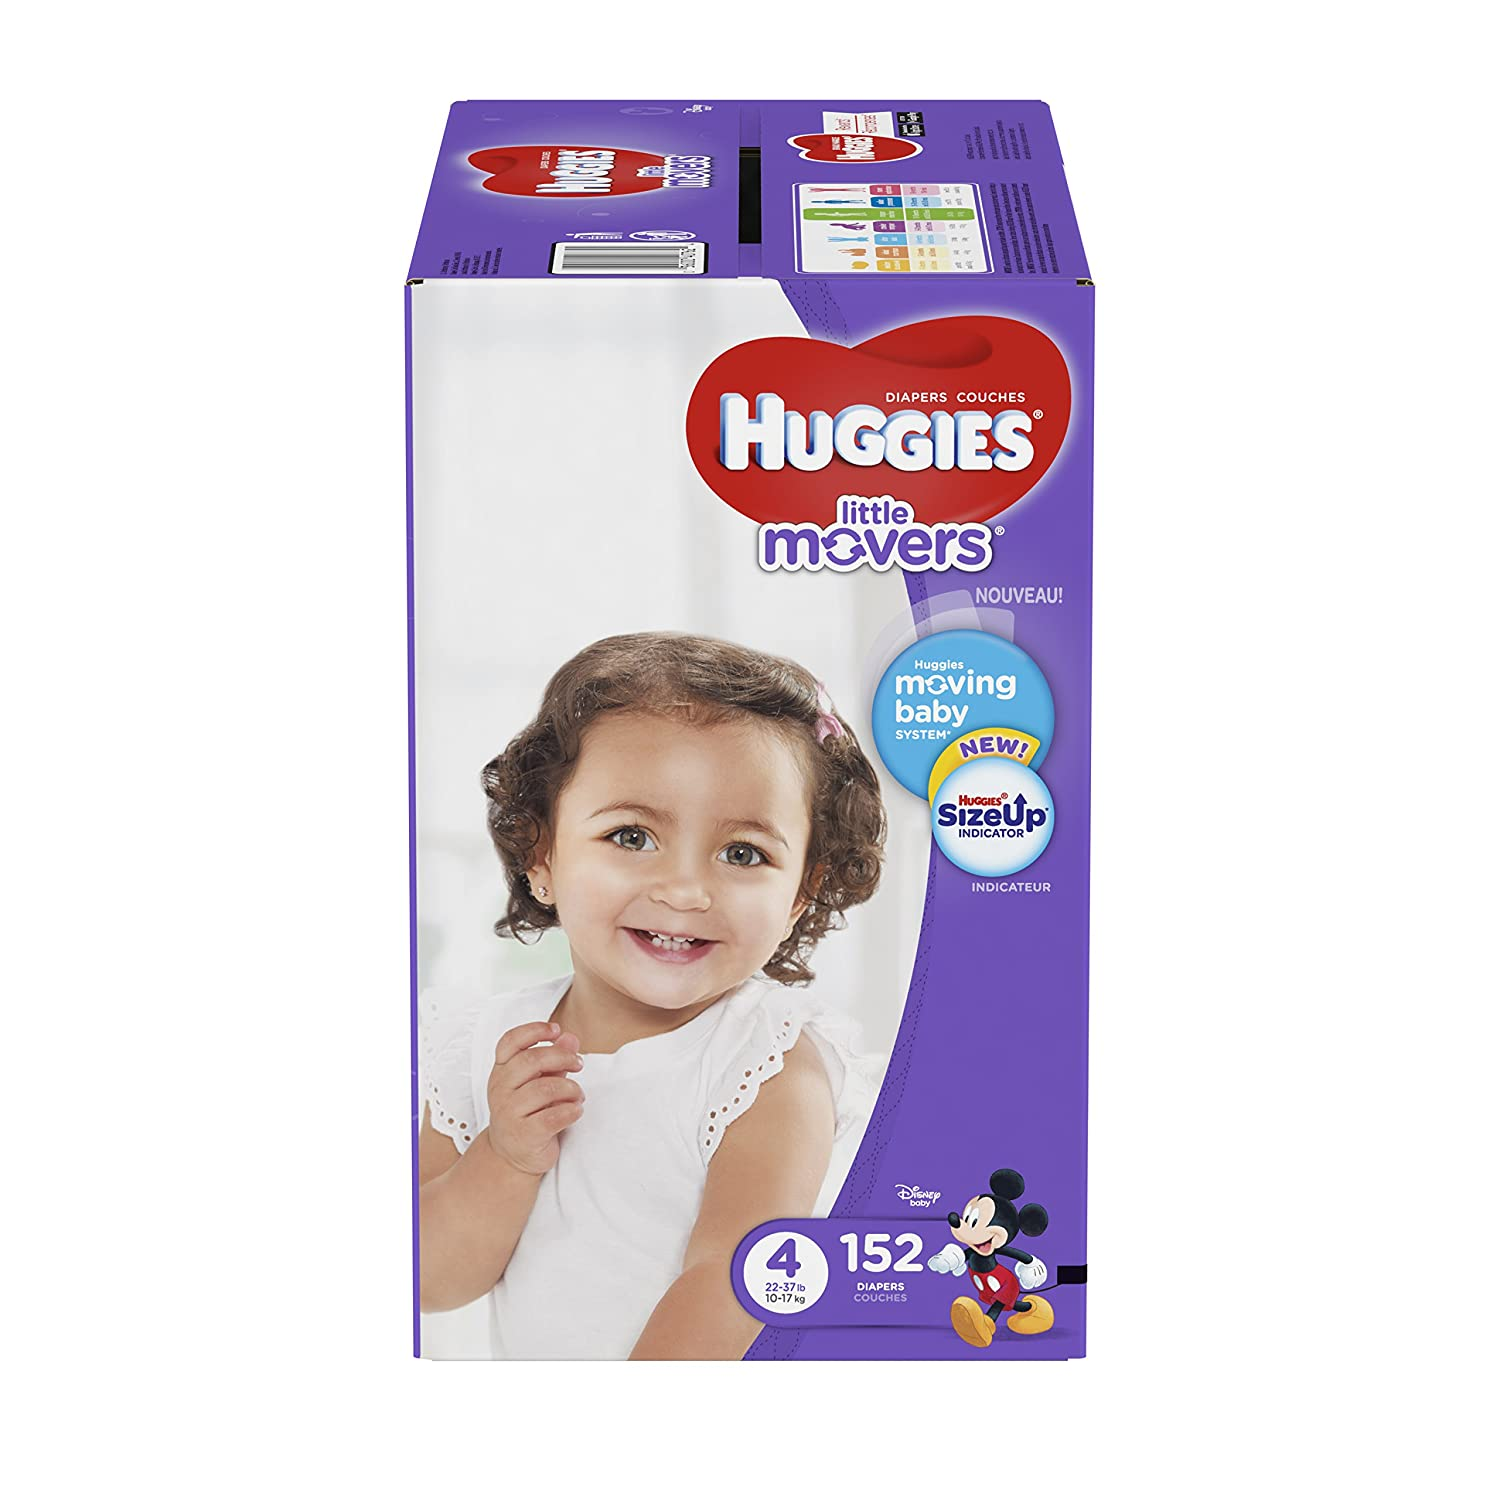 Huggies Little Movers Diapers Size 4 152 Count One Month Supply  # Muebles Huggies